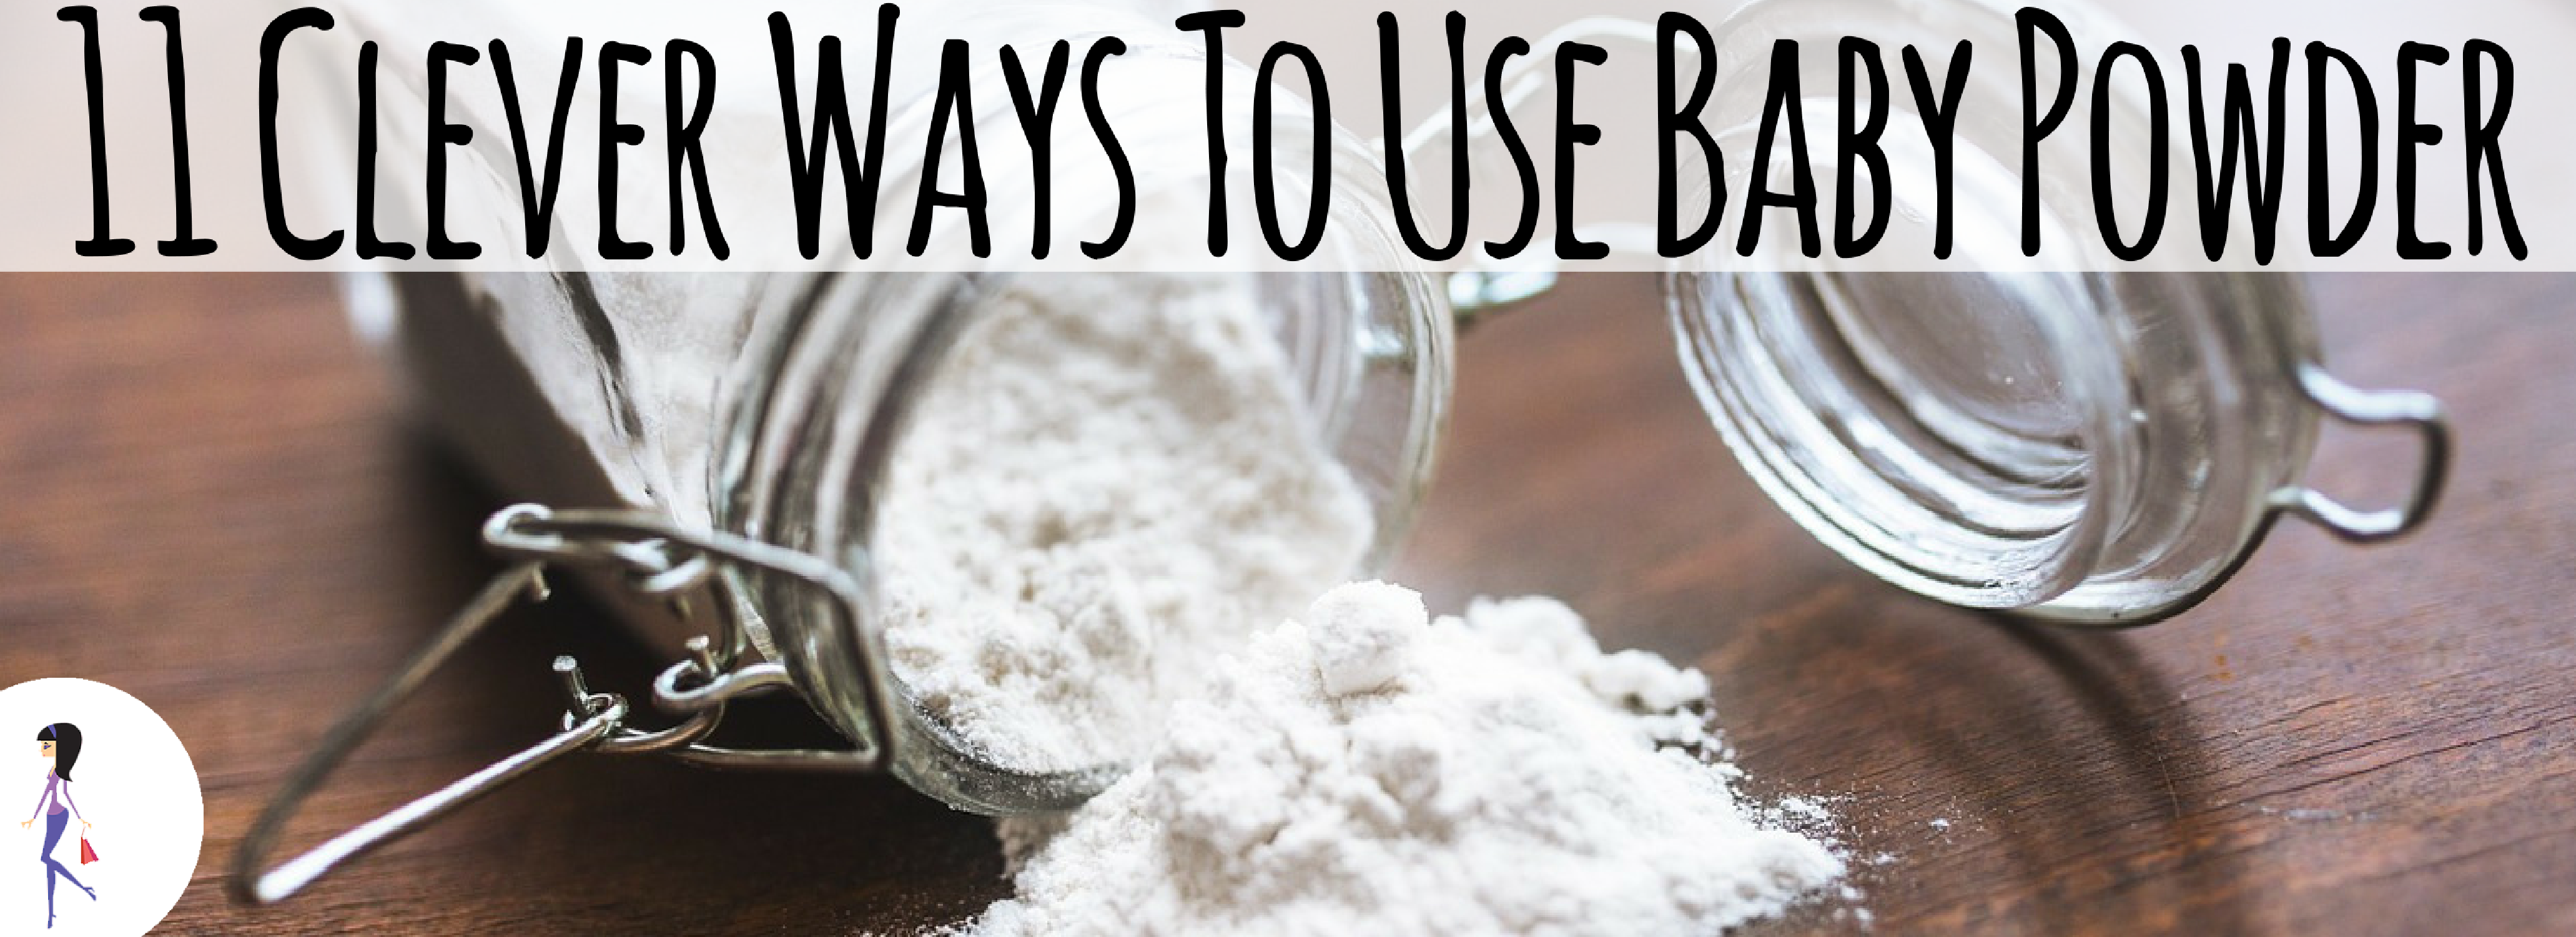 11 Clever Ways To Use Baby Powder